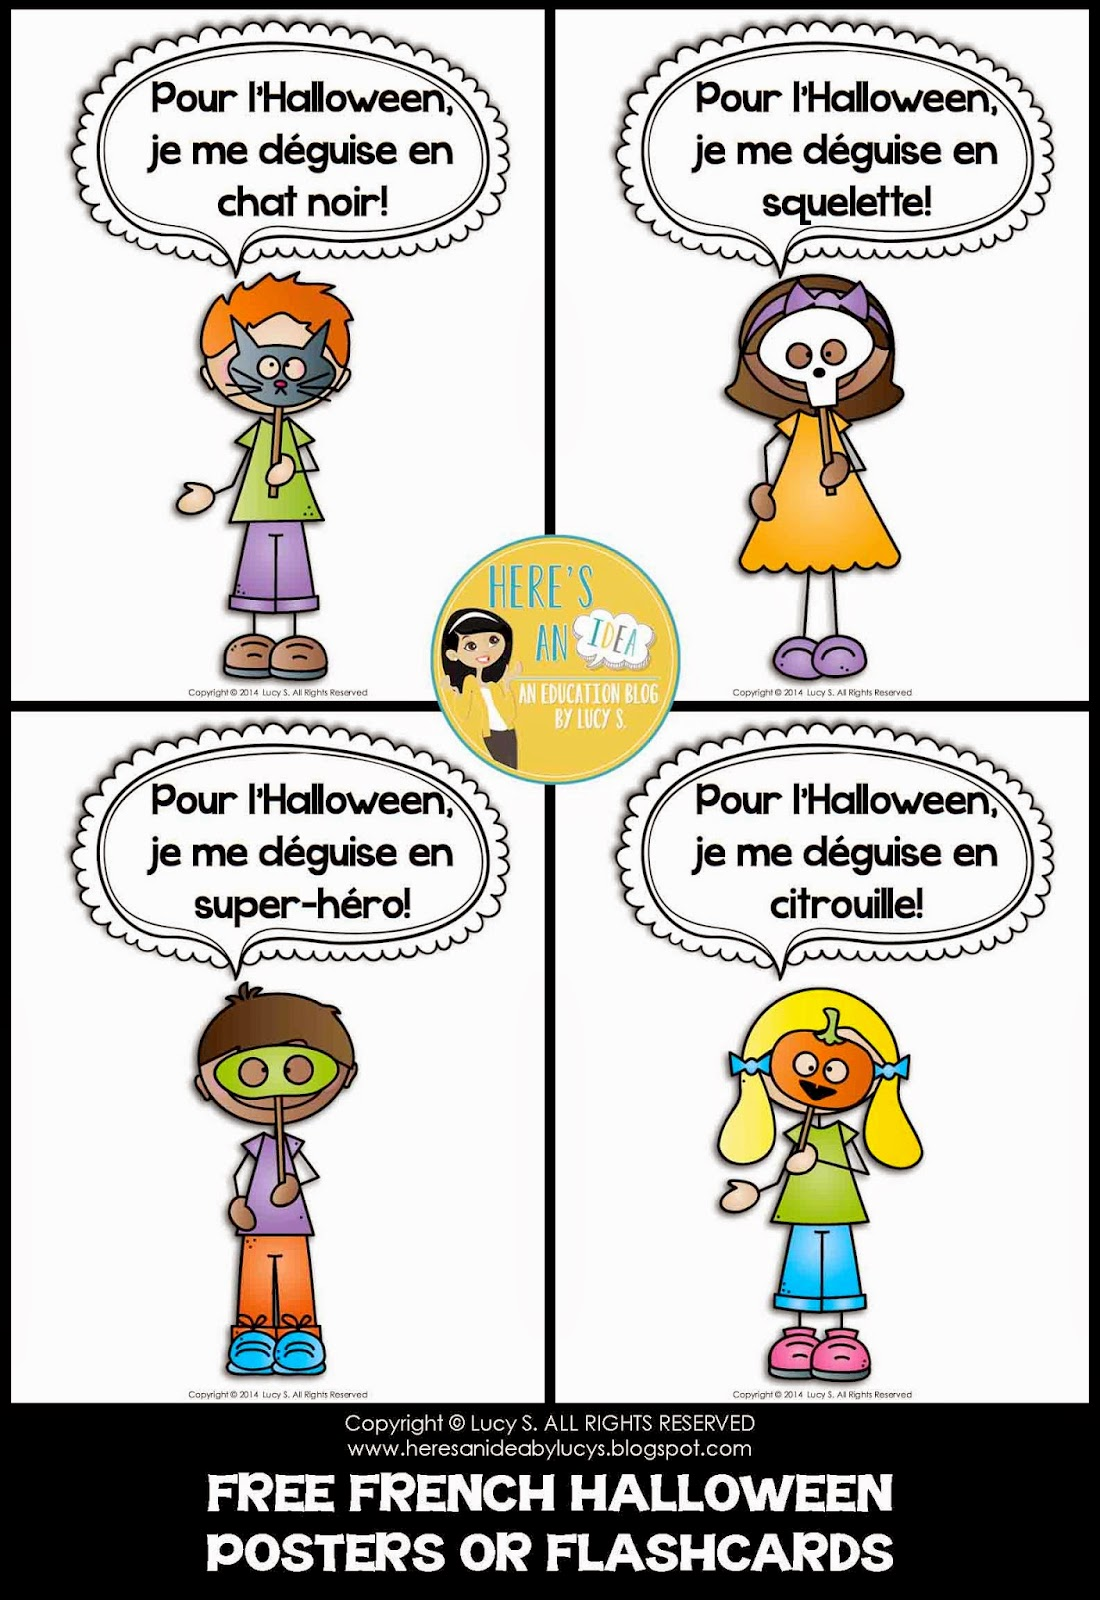 FREE French Halloween Posters